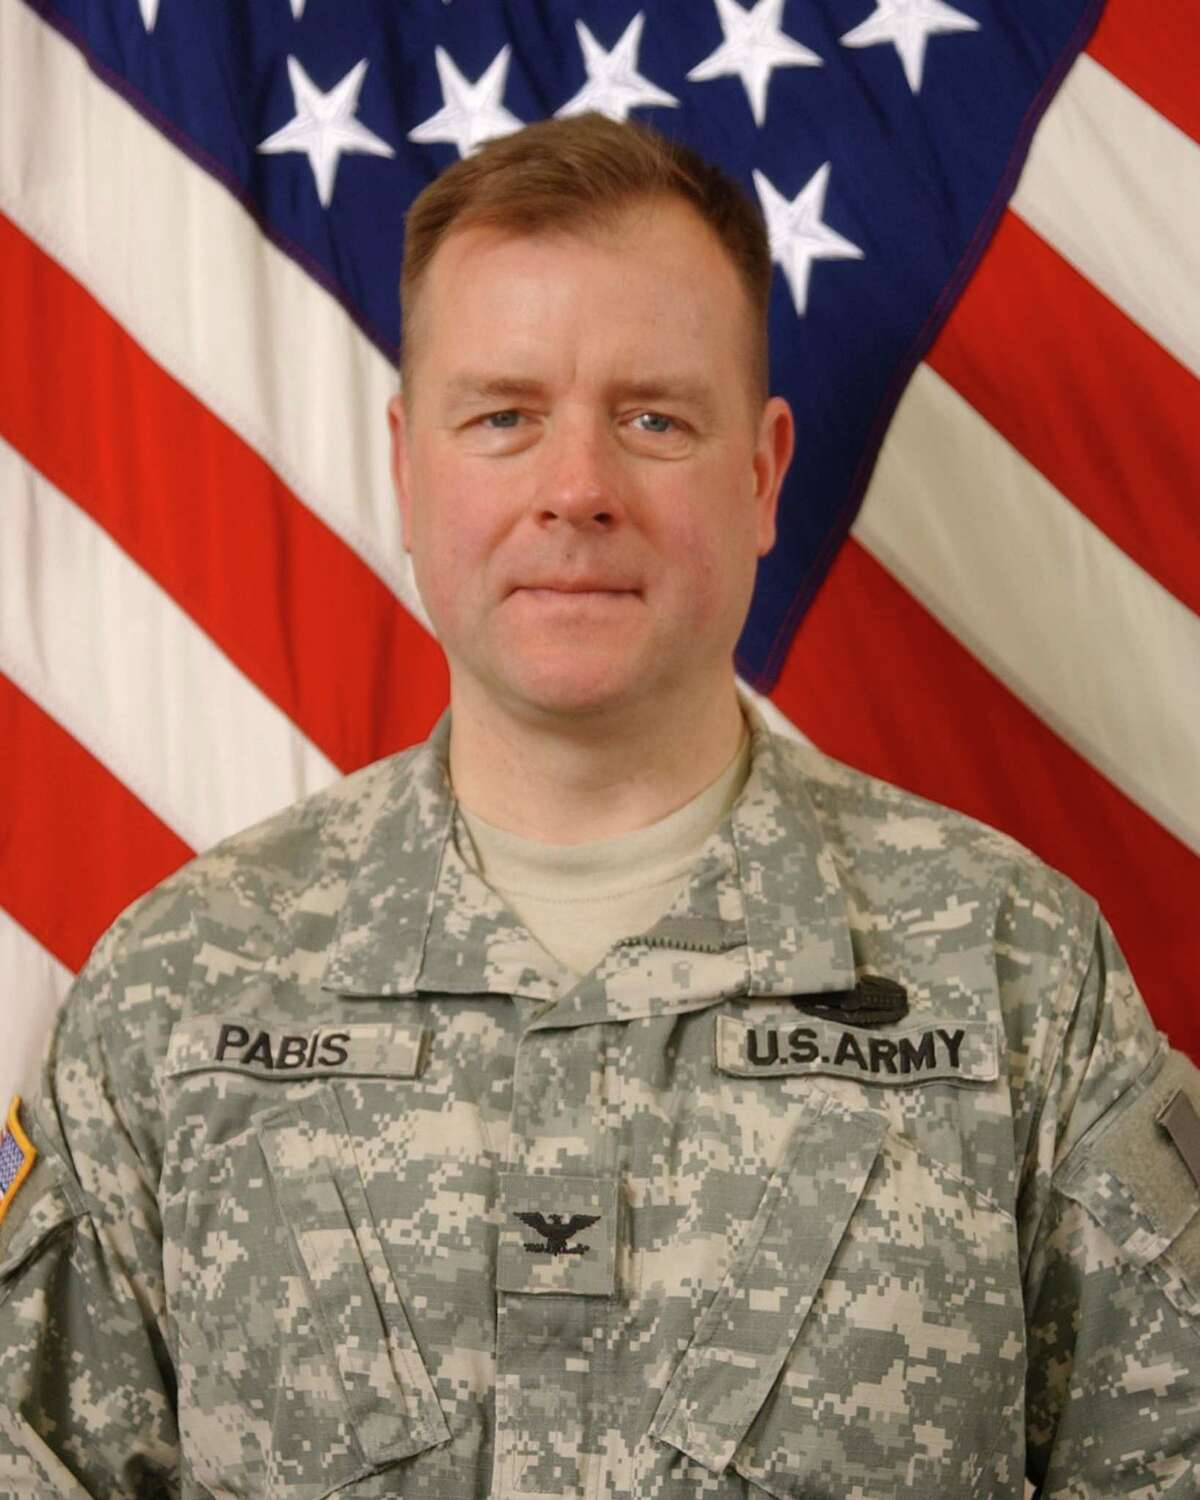 New York Army National Guard Col. James Pabis of Saratoga Springs, a veteran of the Iraq war, has been selected to serve as deputy commander of the 53rd Troop Command, headquartered at Camp Smith Training Site near Peekskill.